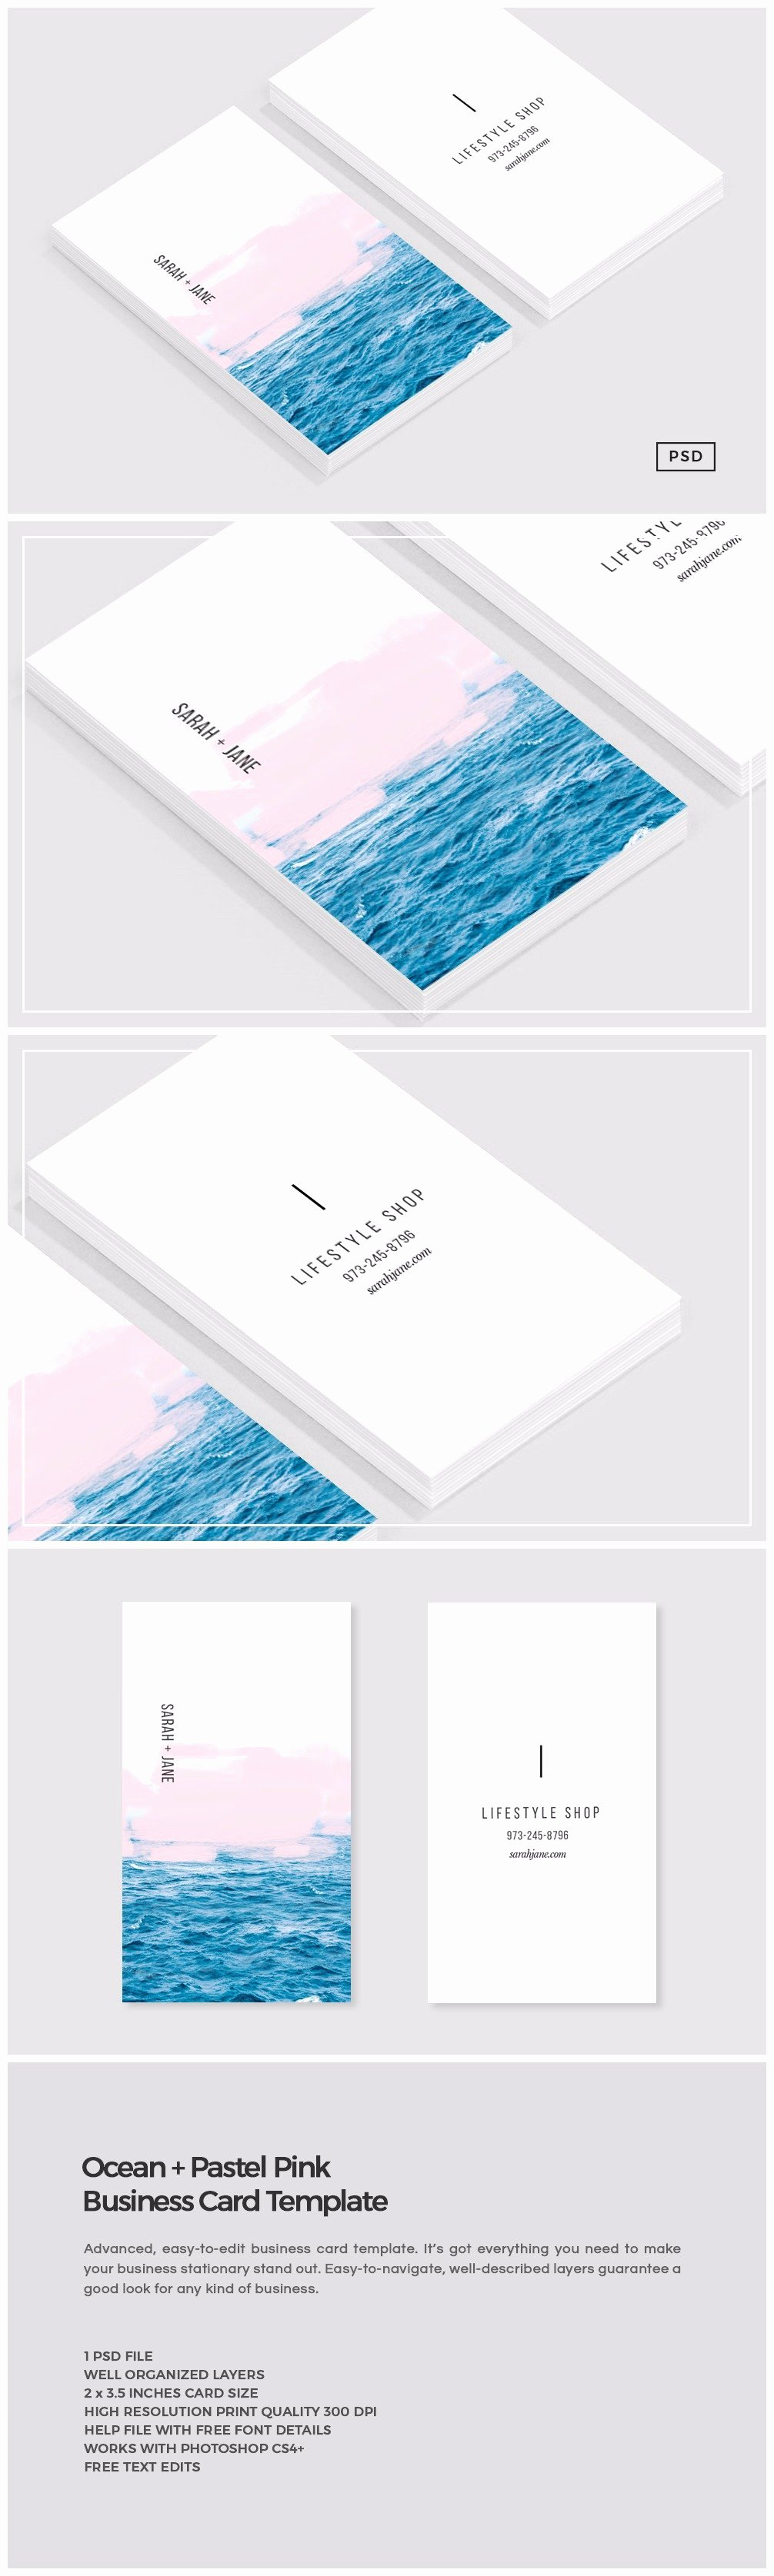 Business Card with Photo Template Luxury Ocean Pink Business Card Template Business Card